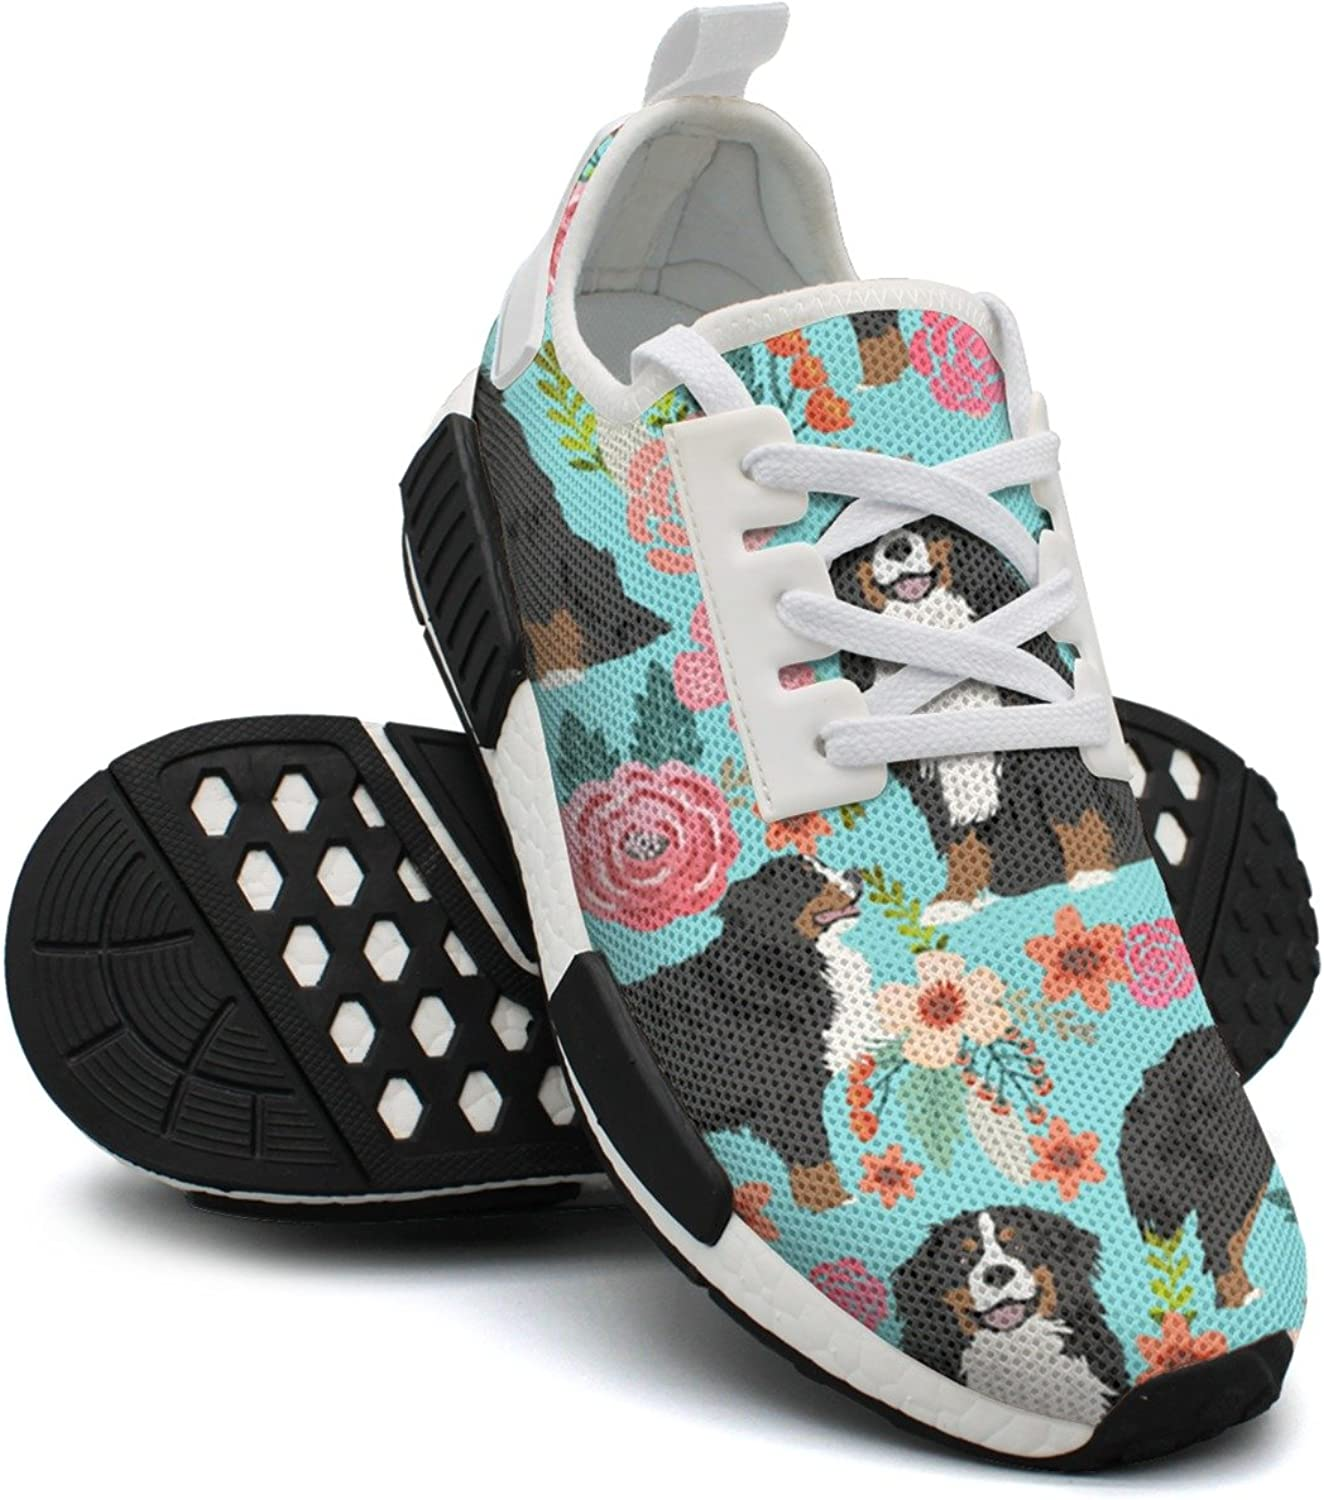 Bernese Pet Dog Floral Women's Funny Lightweight Running Sneakers Gym Outdoor Sports shoes